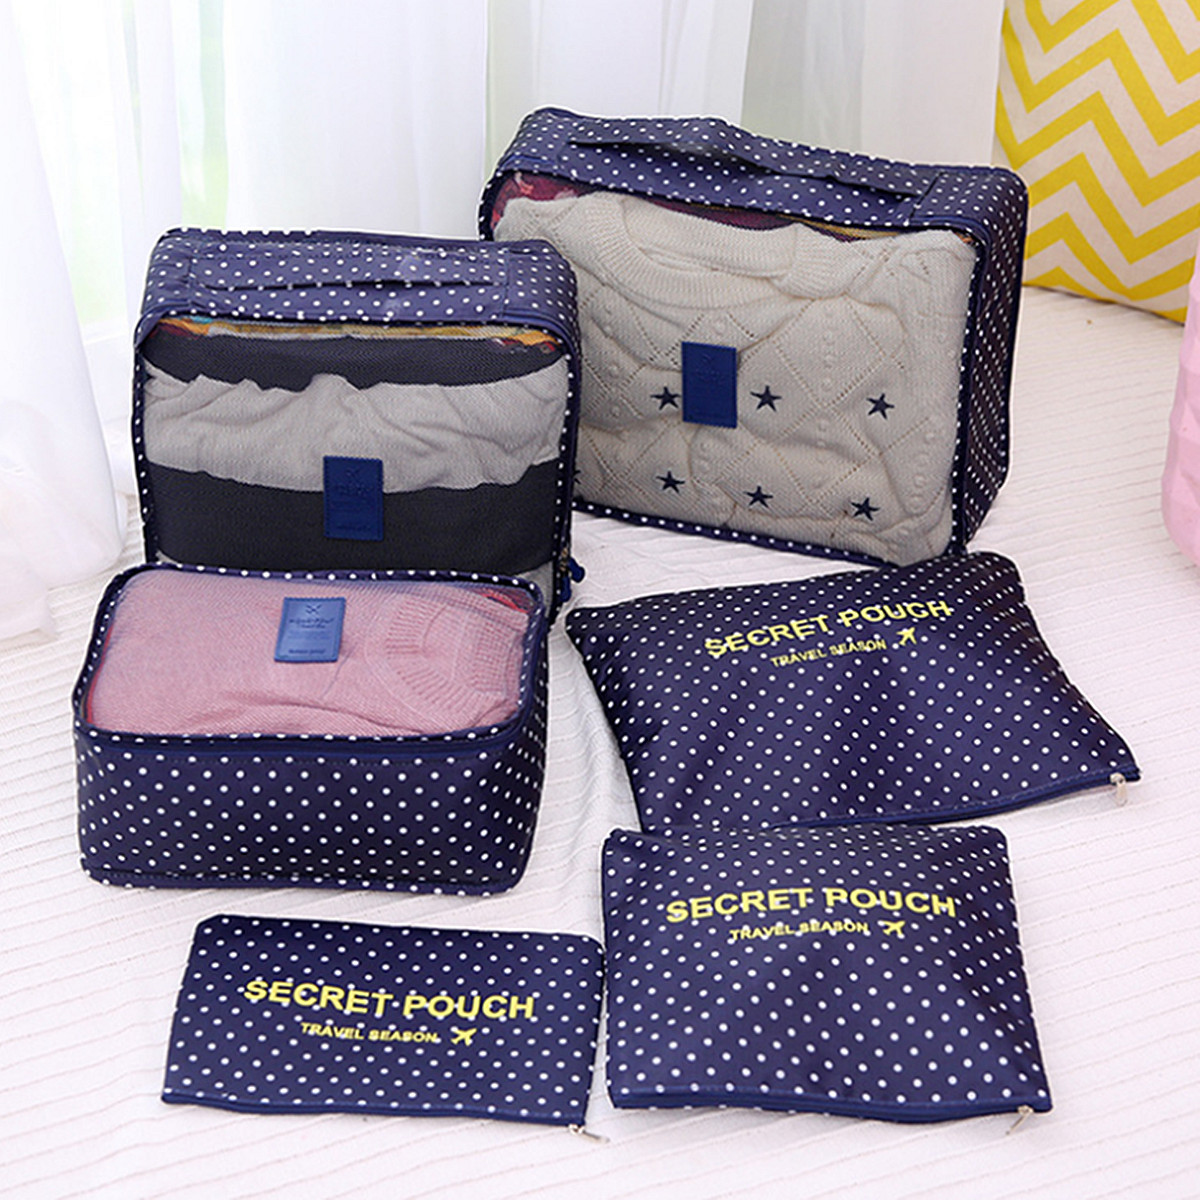 6pcs v tements sous v tements cube rangement organiseur de sac voyage bagage bag ebay. Black Bedroom Furniture Sets. Home Design Ideas